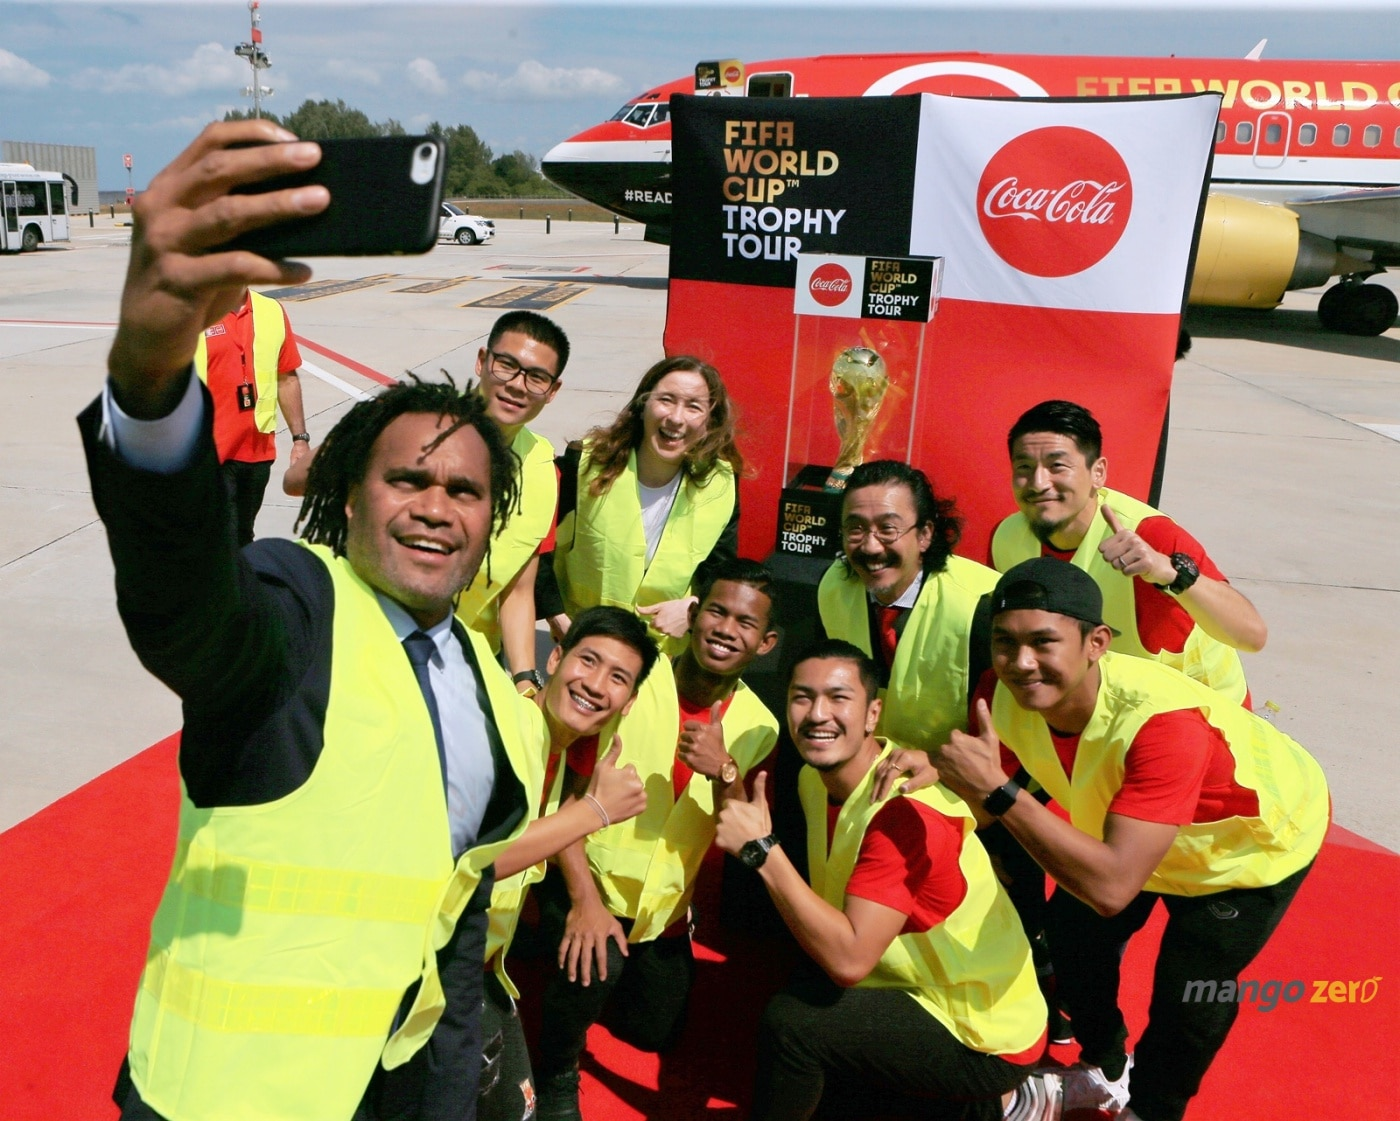 2018-fifa-world-cup-trophy-tour-by-coca-cola-at-phuket-2